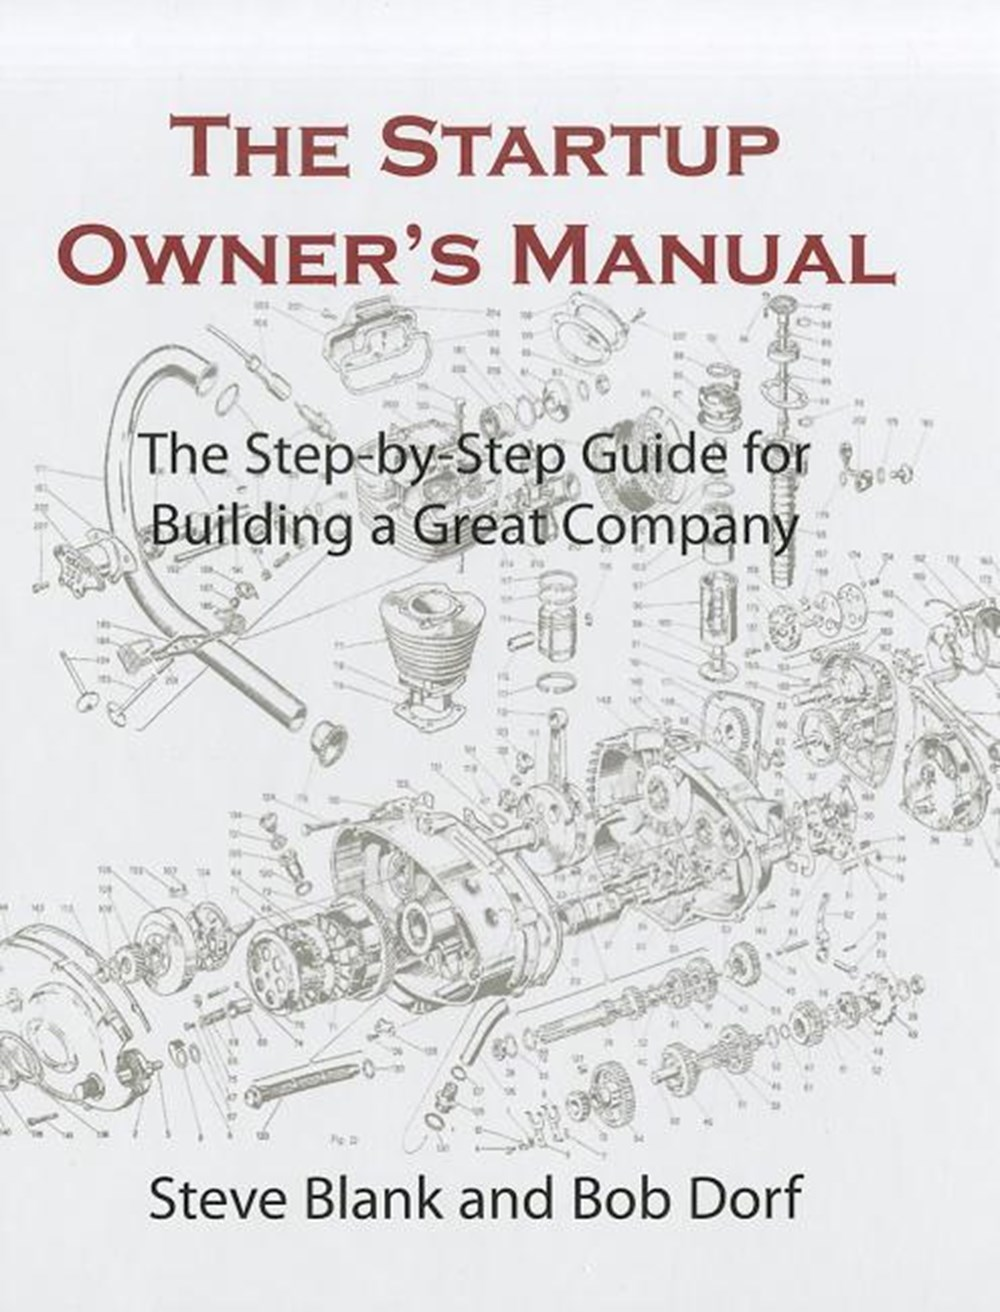 Startup Owner's Manual The Step-By-Step Guide for Building a Great Company